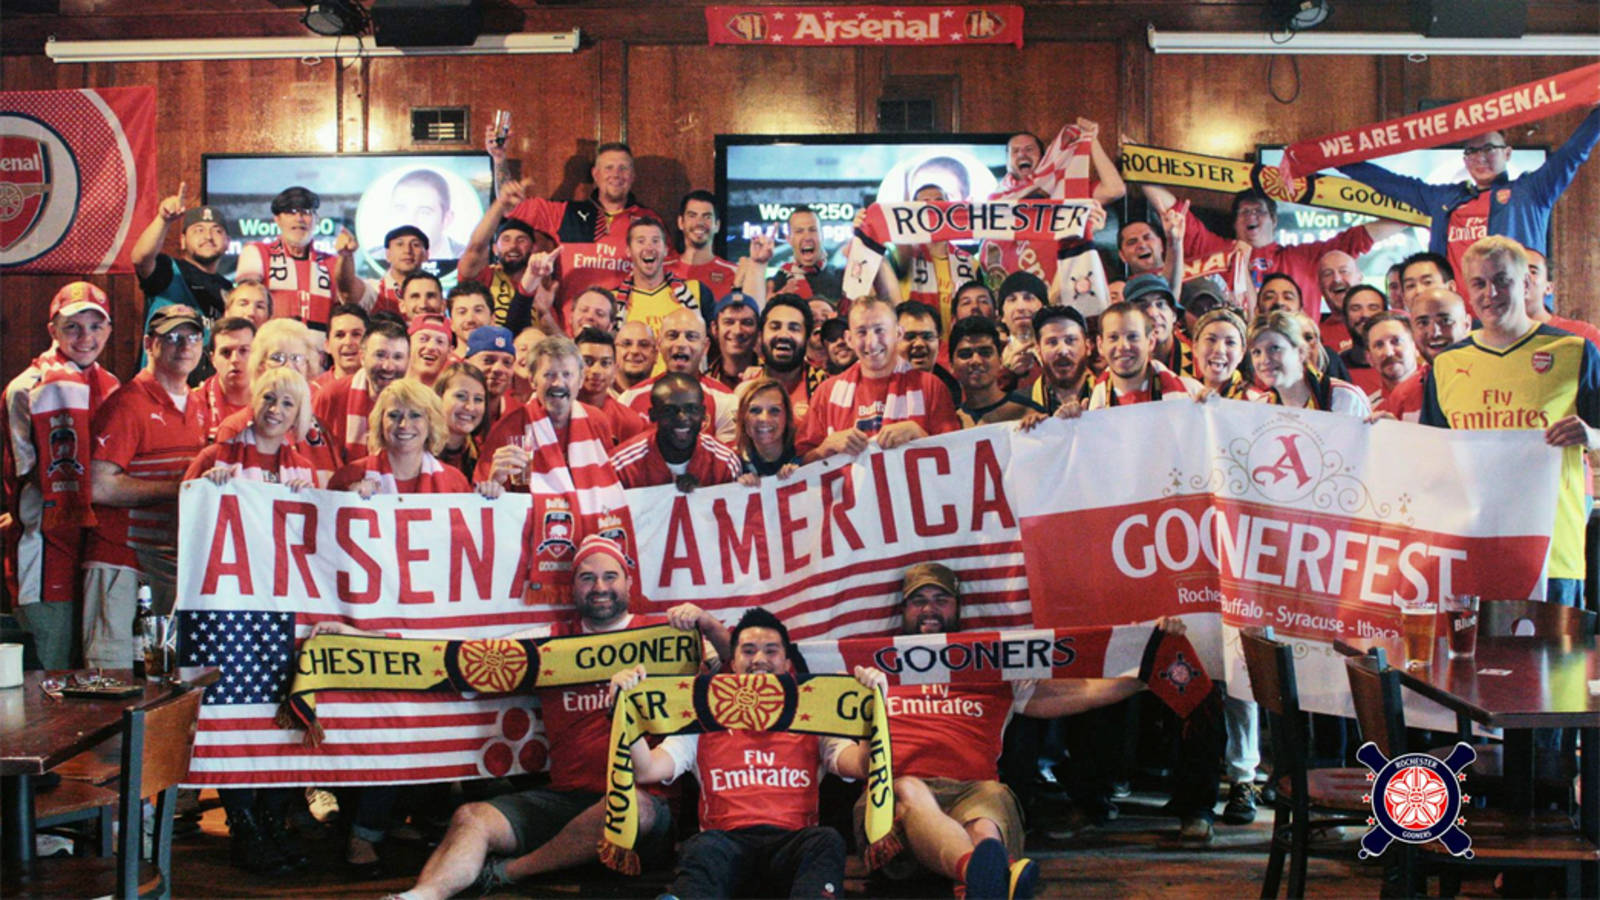 Arsenal on TV in USA and Canada